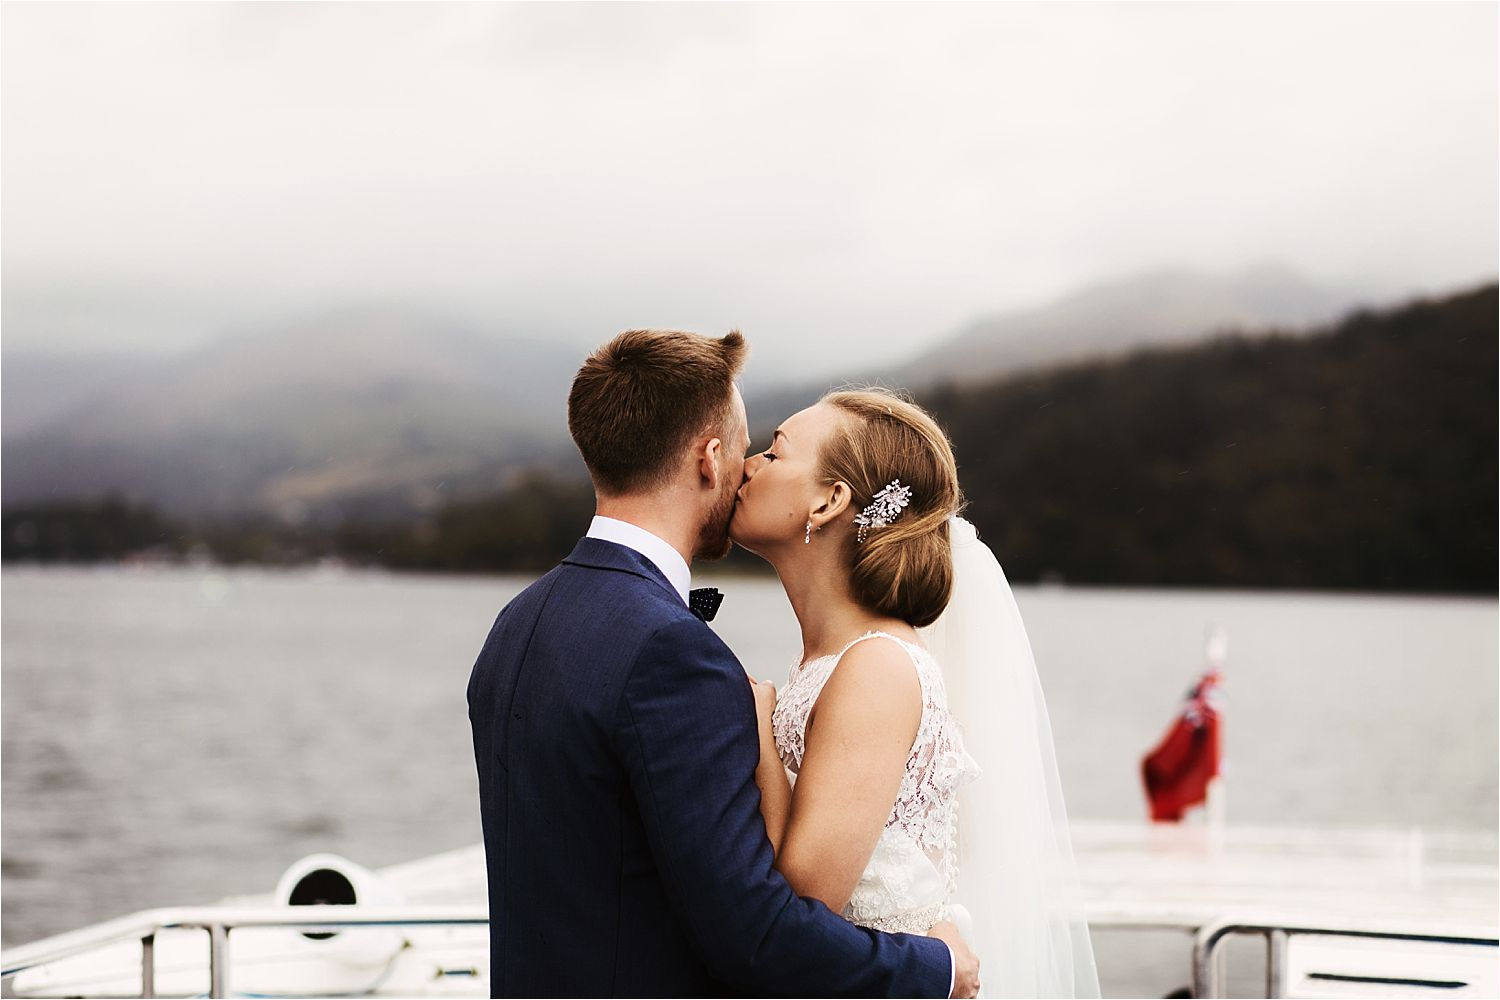 Wedding couple kissing on boat trip on Lake Windermere.